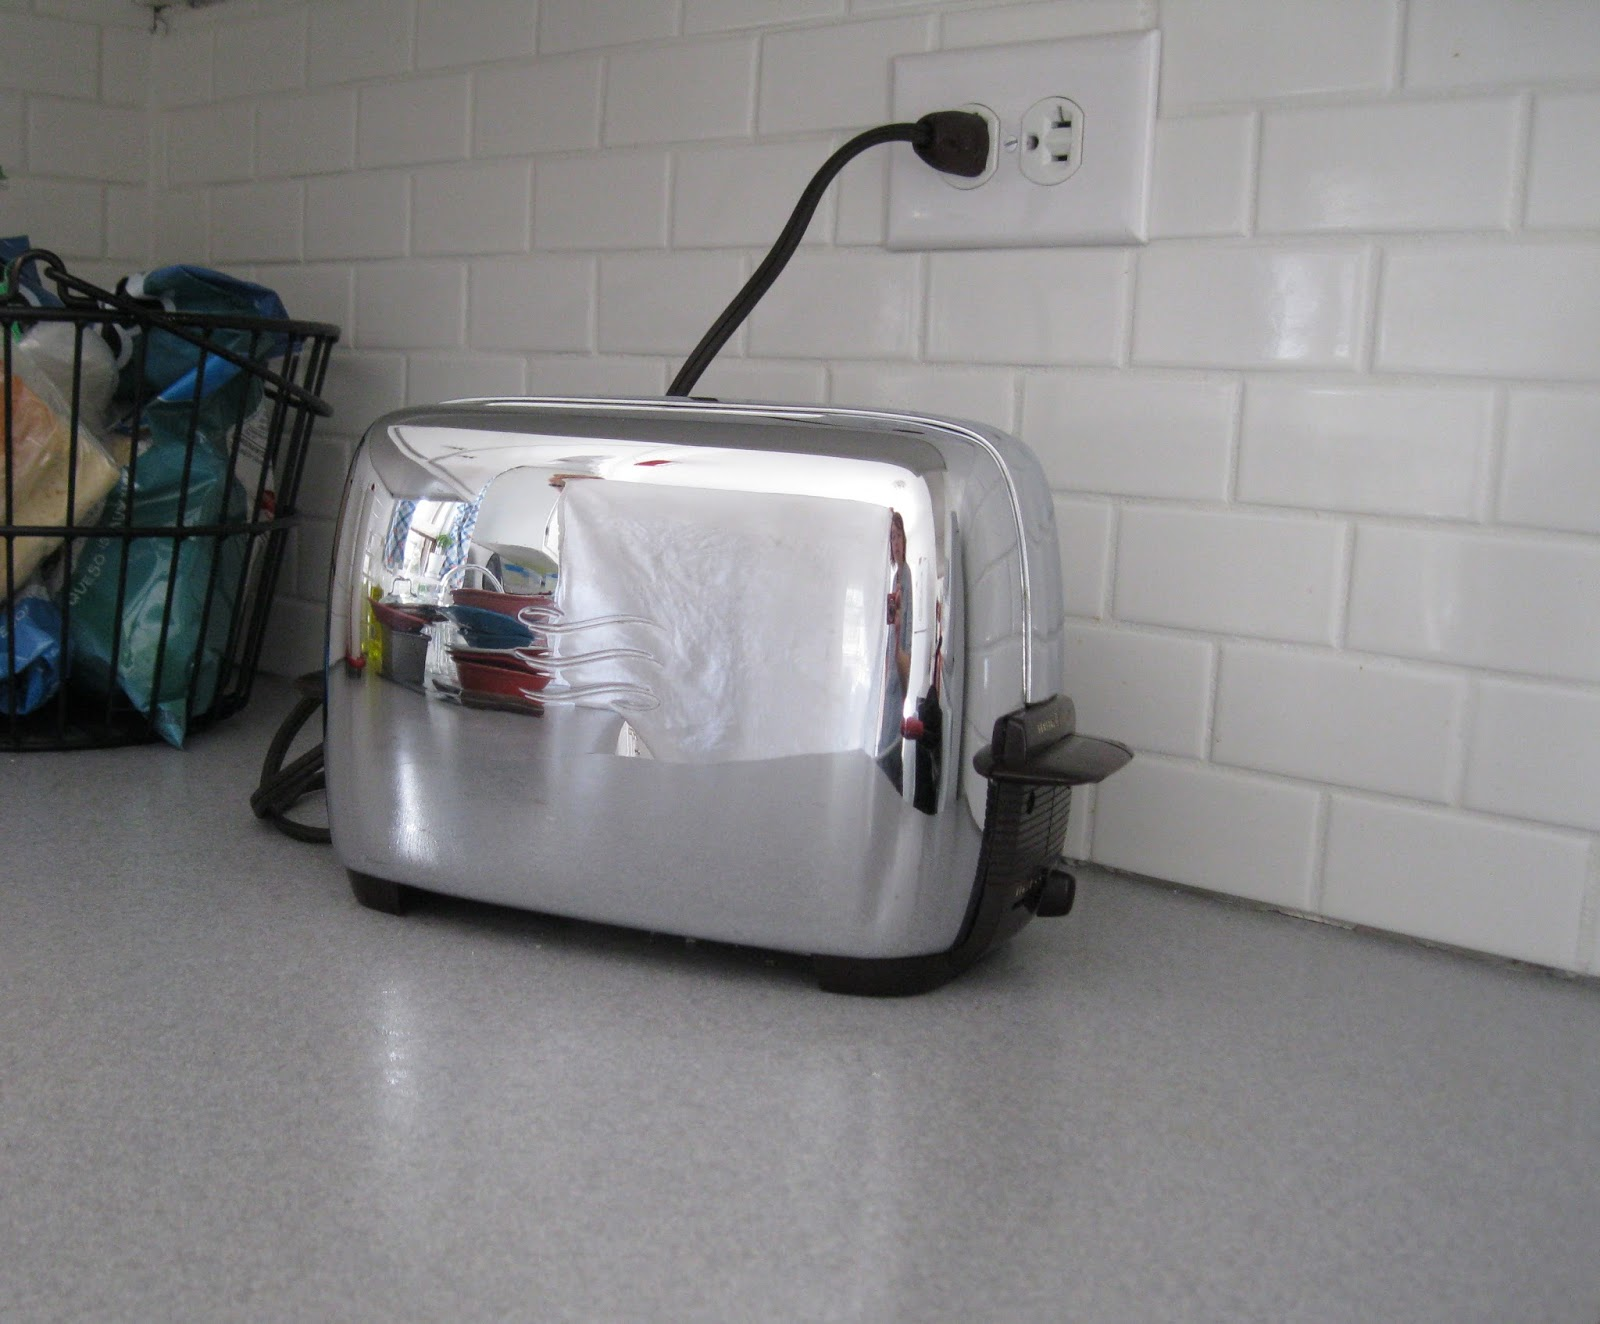 1960s Toaster With Bread ~ Apron history a shiny vintage toaster